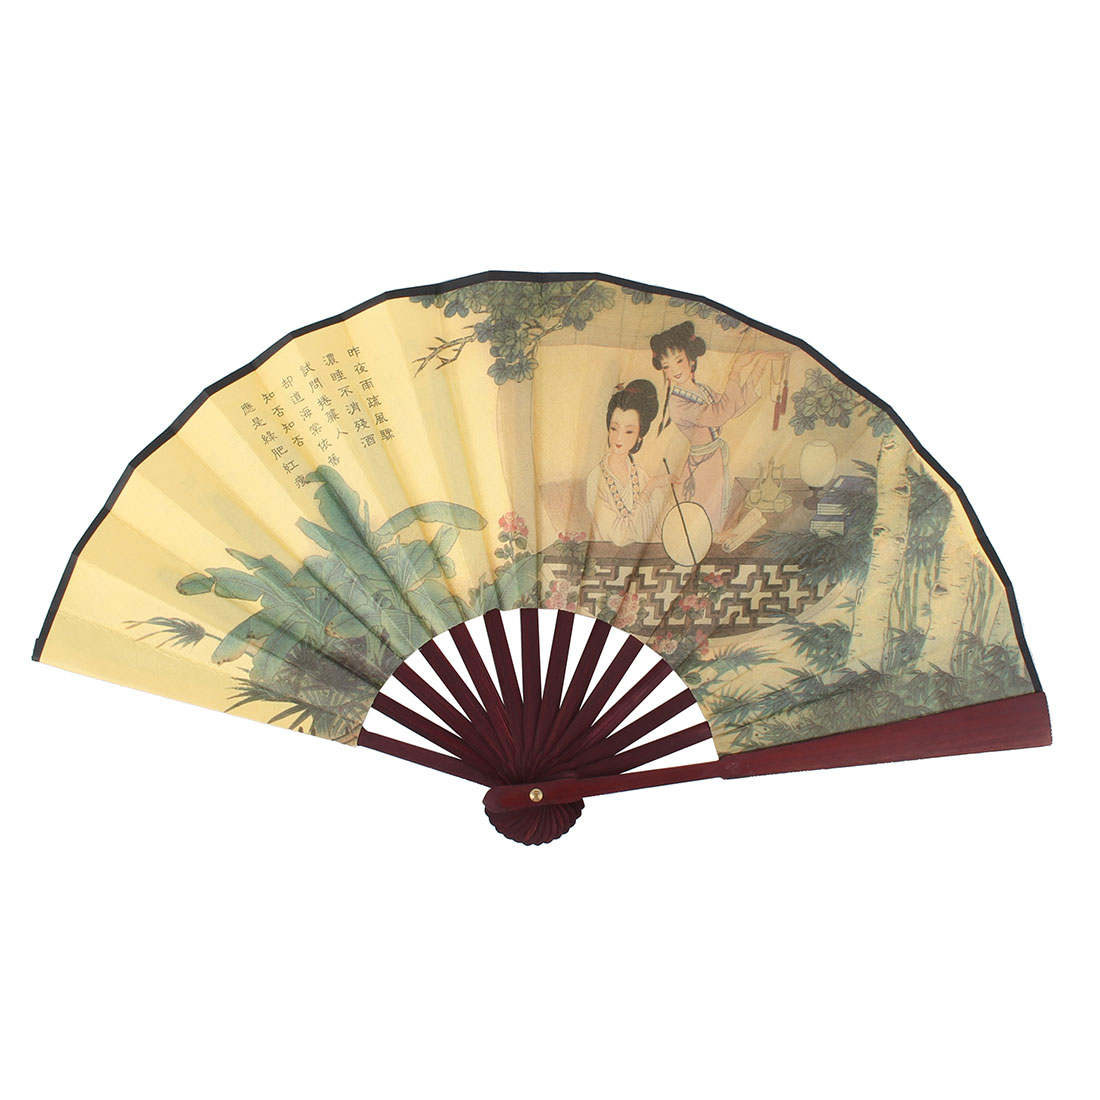 Wood Ribs Landscape Painting Poetry Chinese Retro Summer Hand Folding Fan Yellow